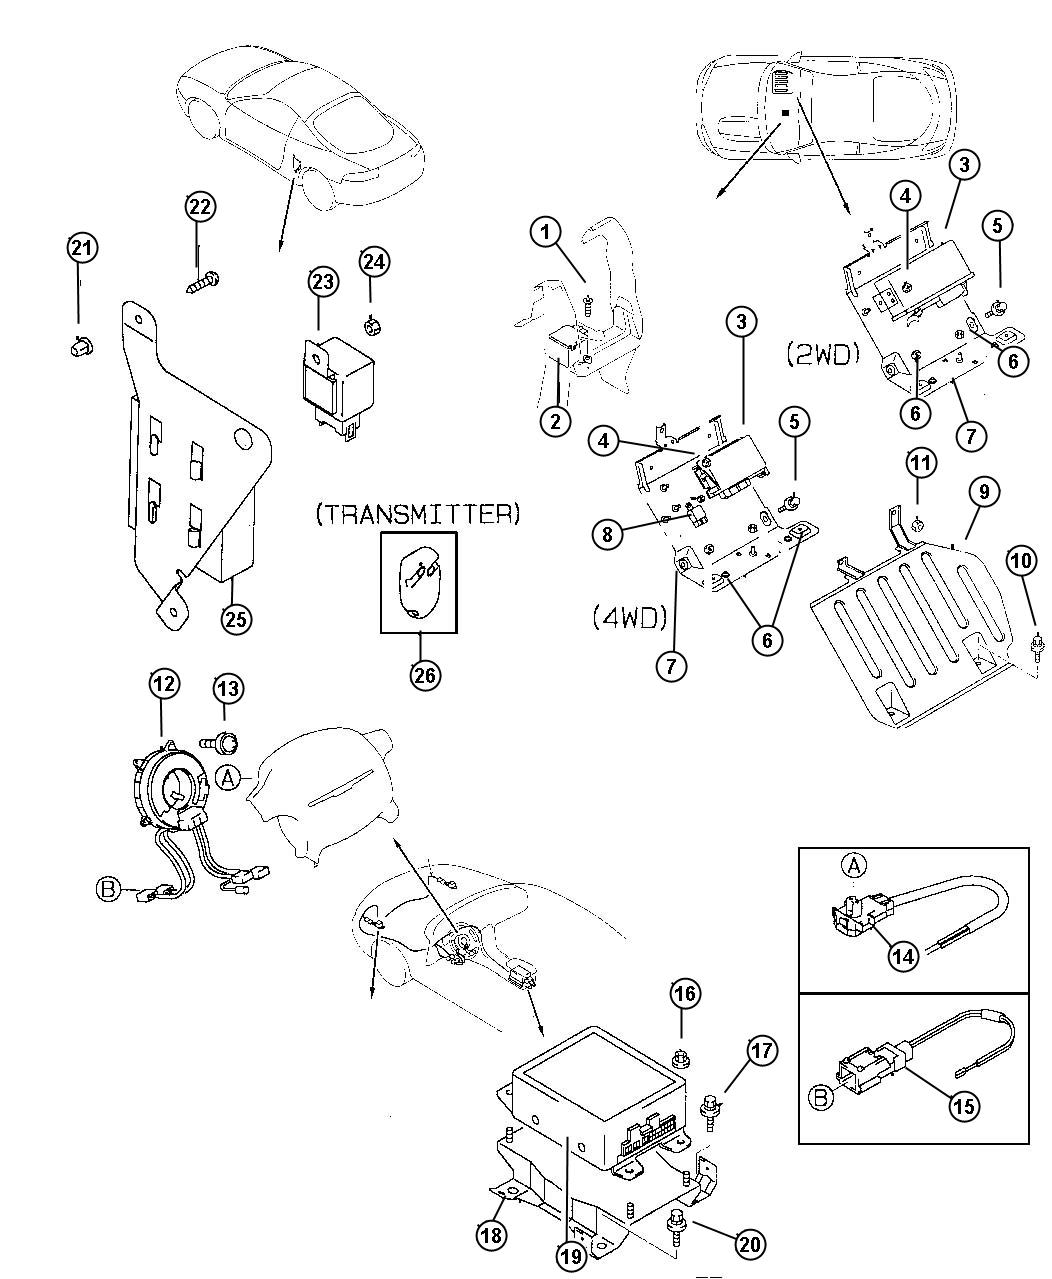 Diagram Dodge Ram Remote Keyless Entry Wiring